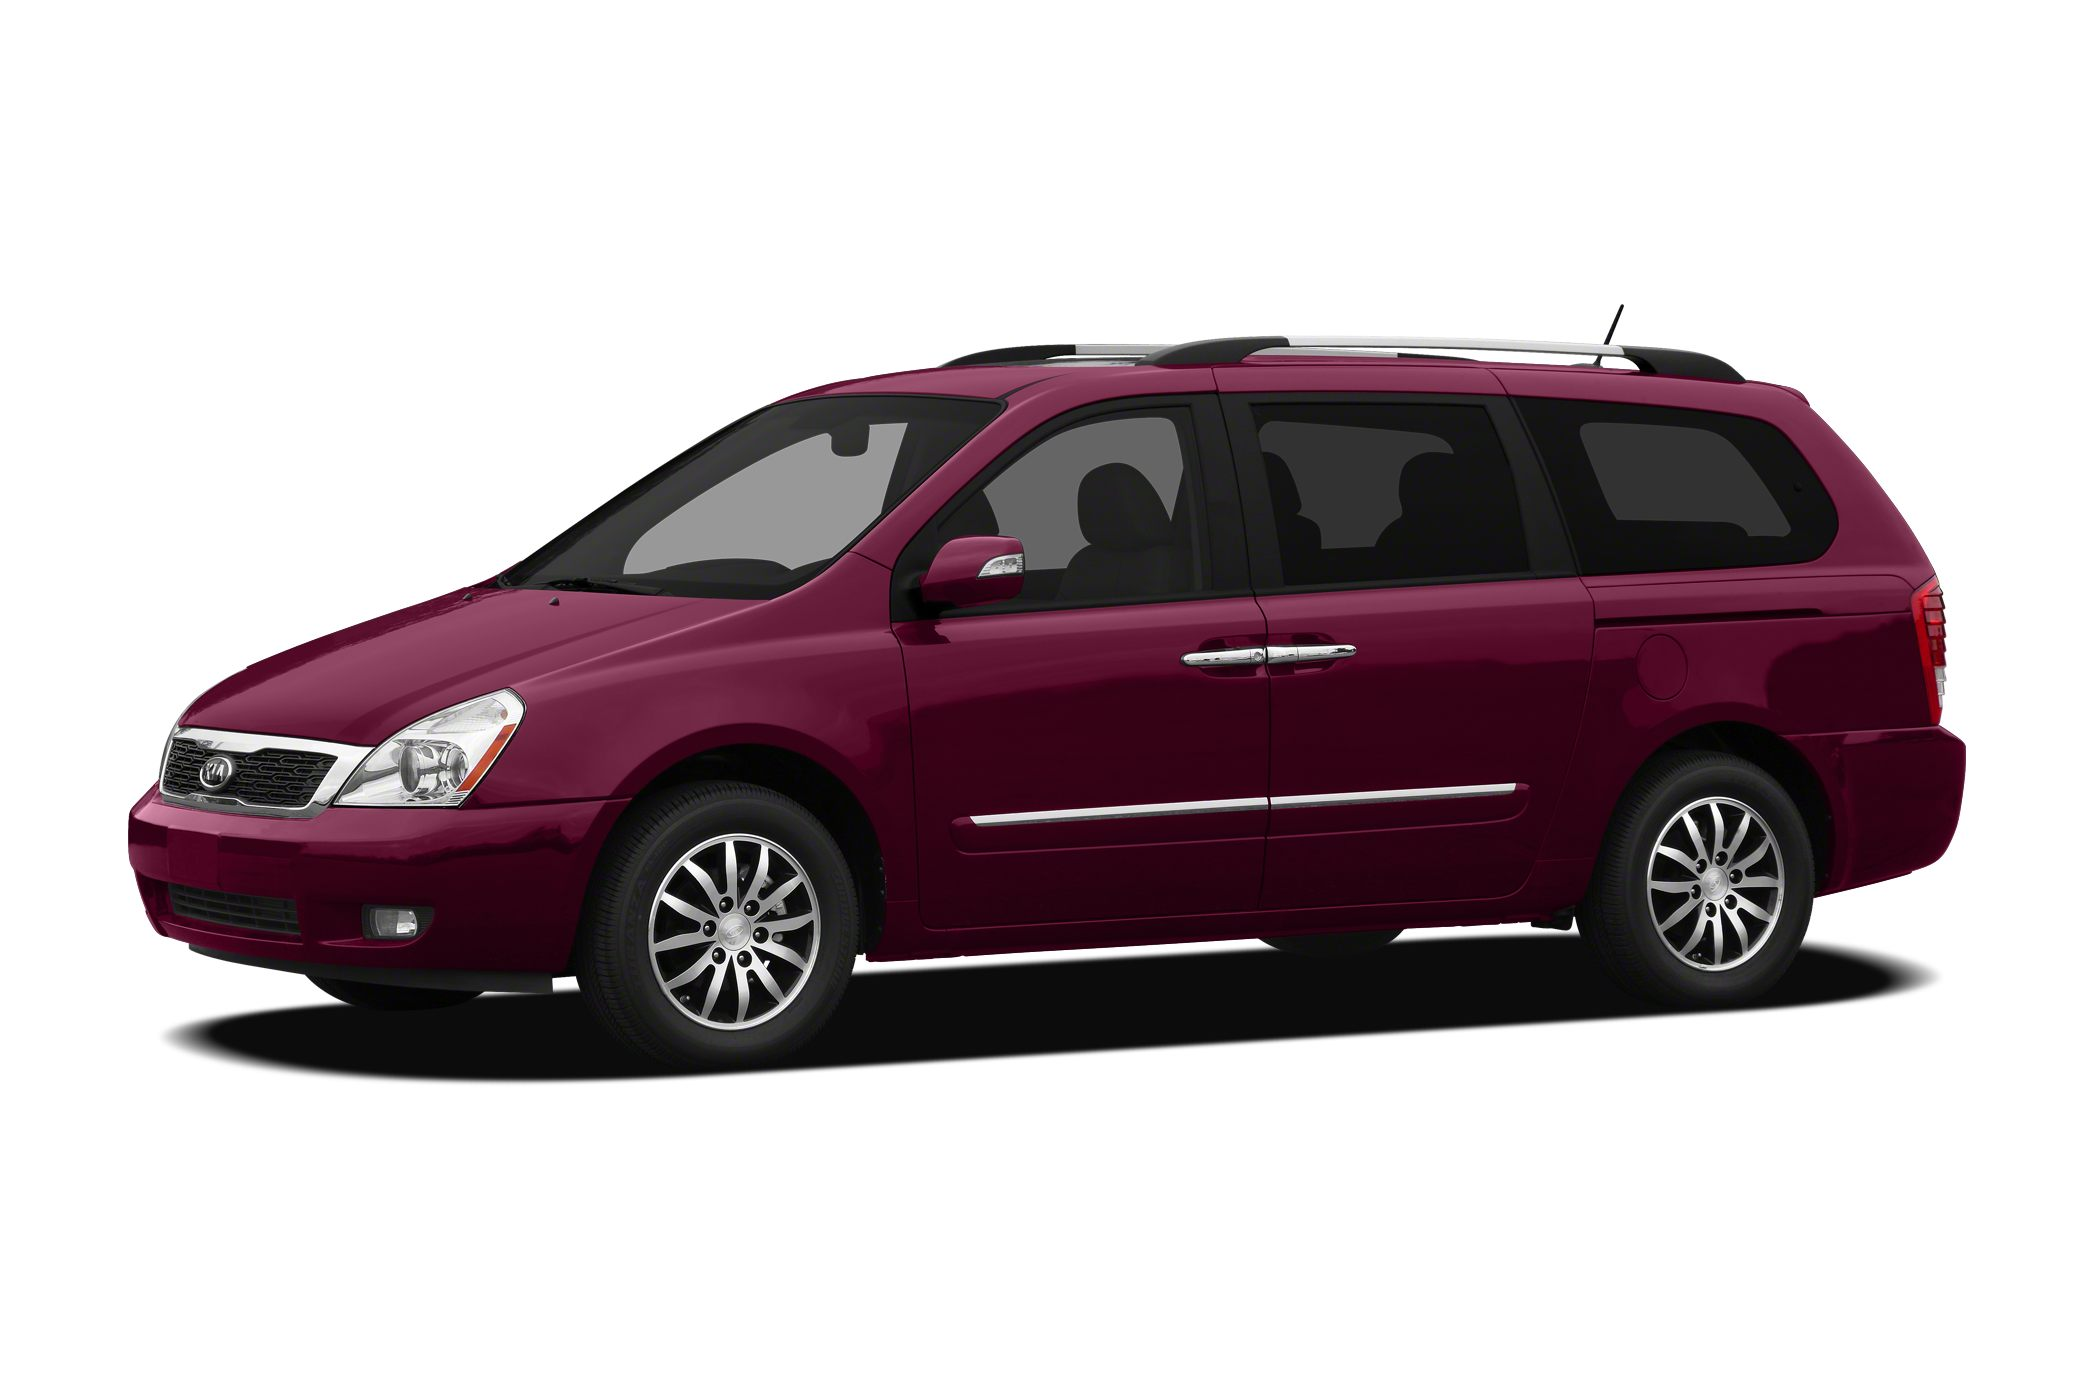 2012 Kia Sedona LX Minivan for sale in Cumberland for $16,999 with 41,962 miles.